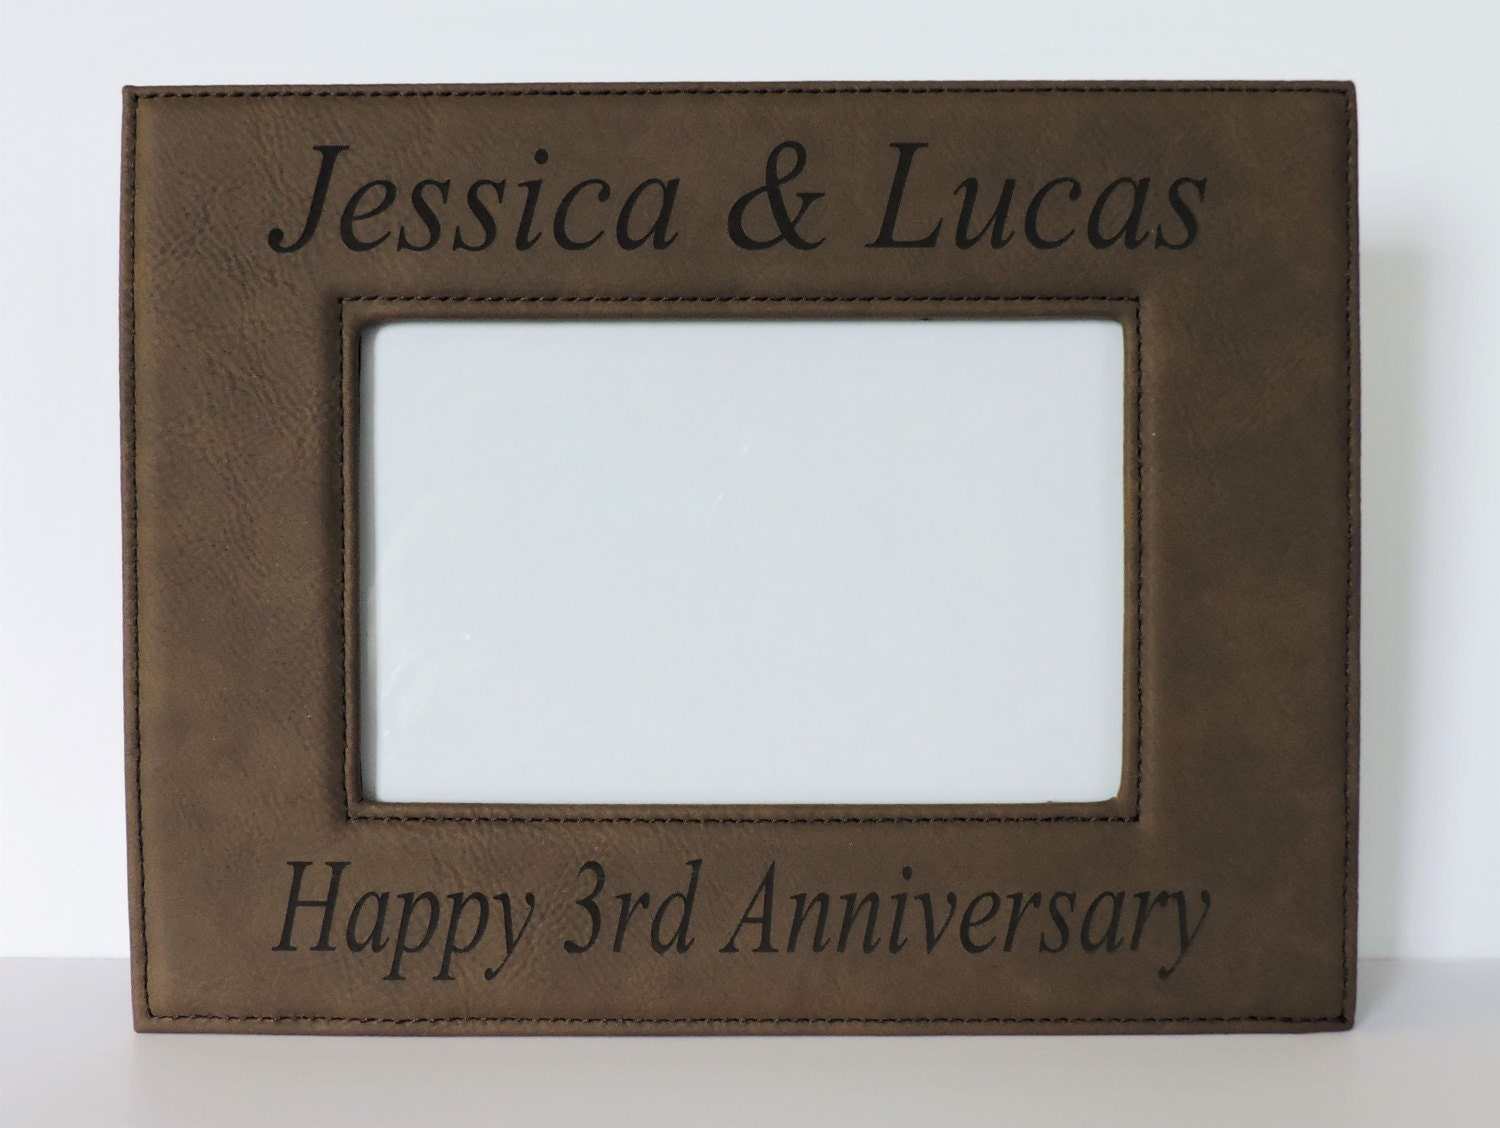 3rd Wedding Anniversary Leather Gifts: 3rd Anniversary Leather Gift Leather Photo Frame For